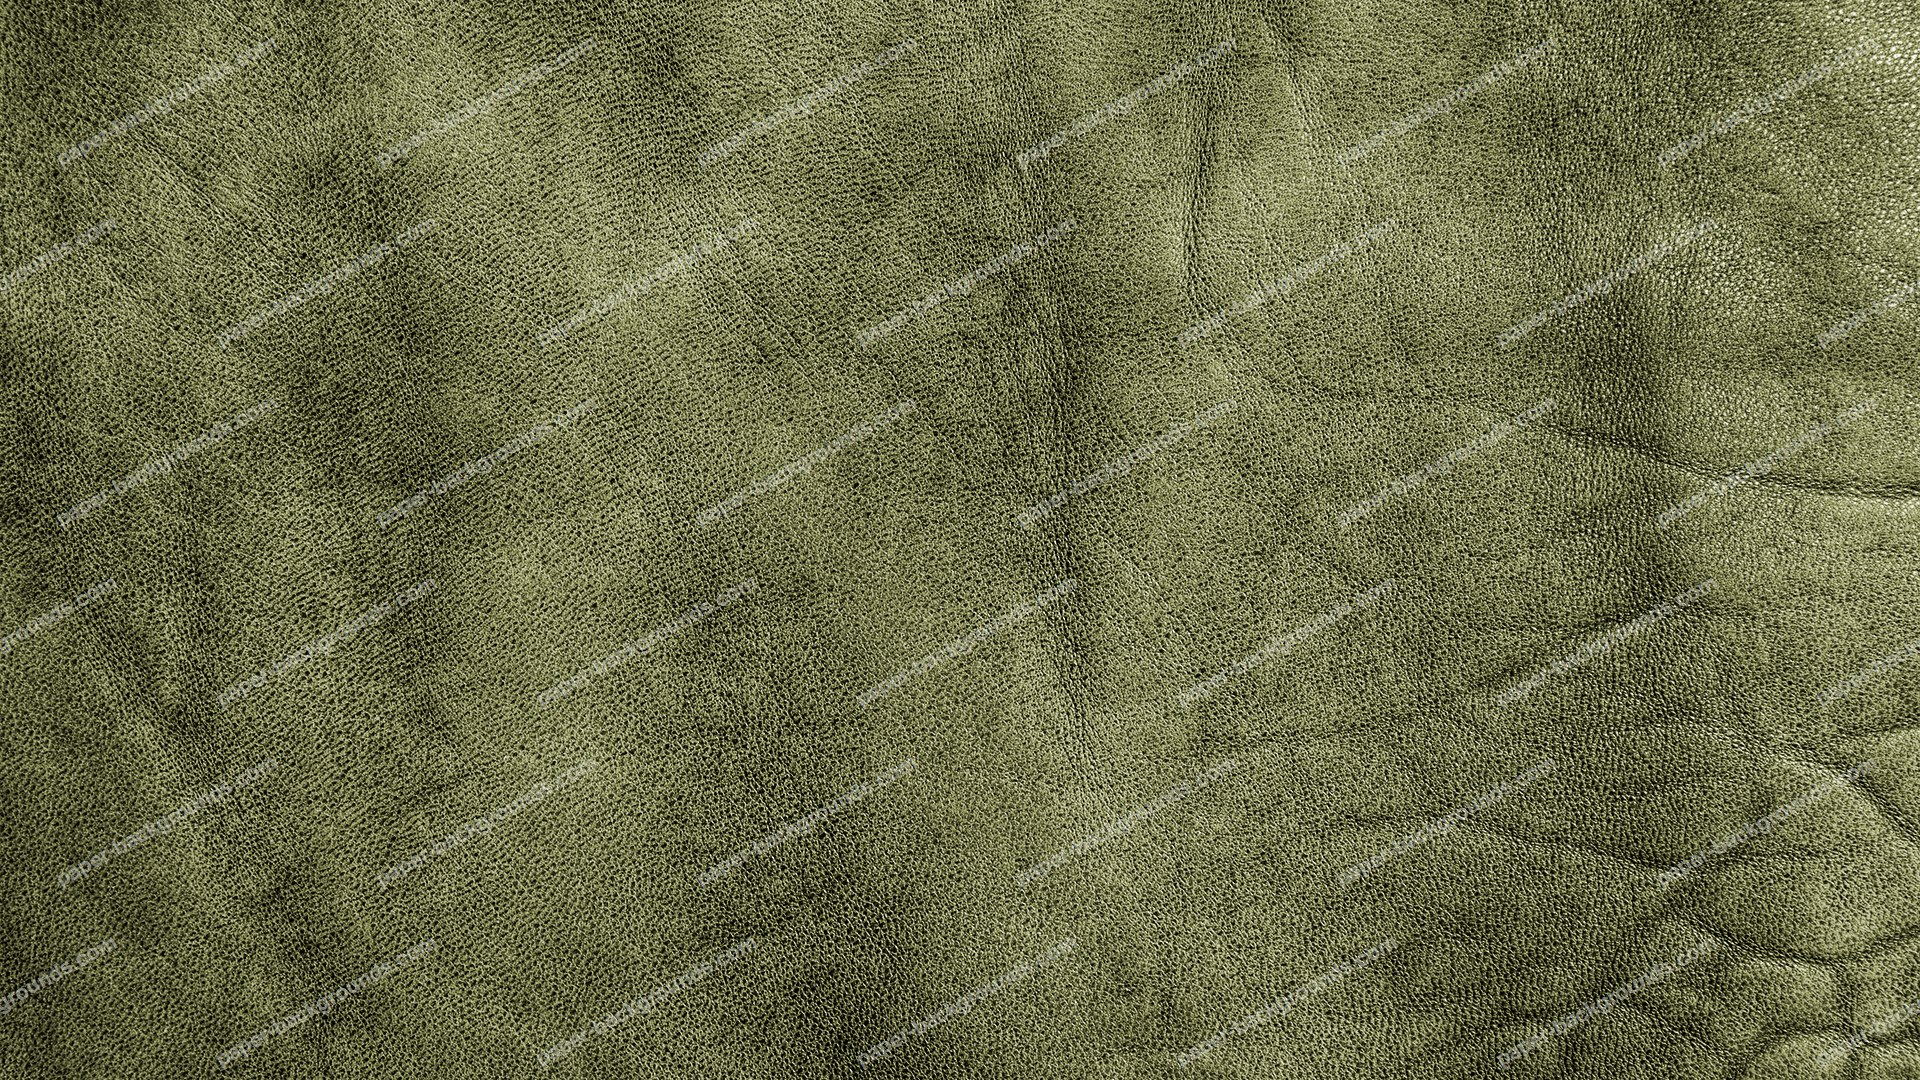 Brown Camouflage Leather Texture HD 1920 x 1080p